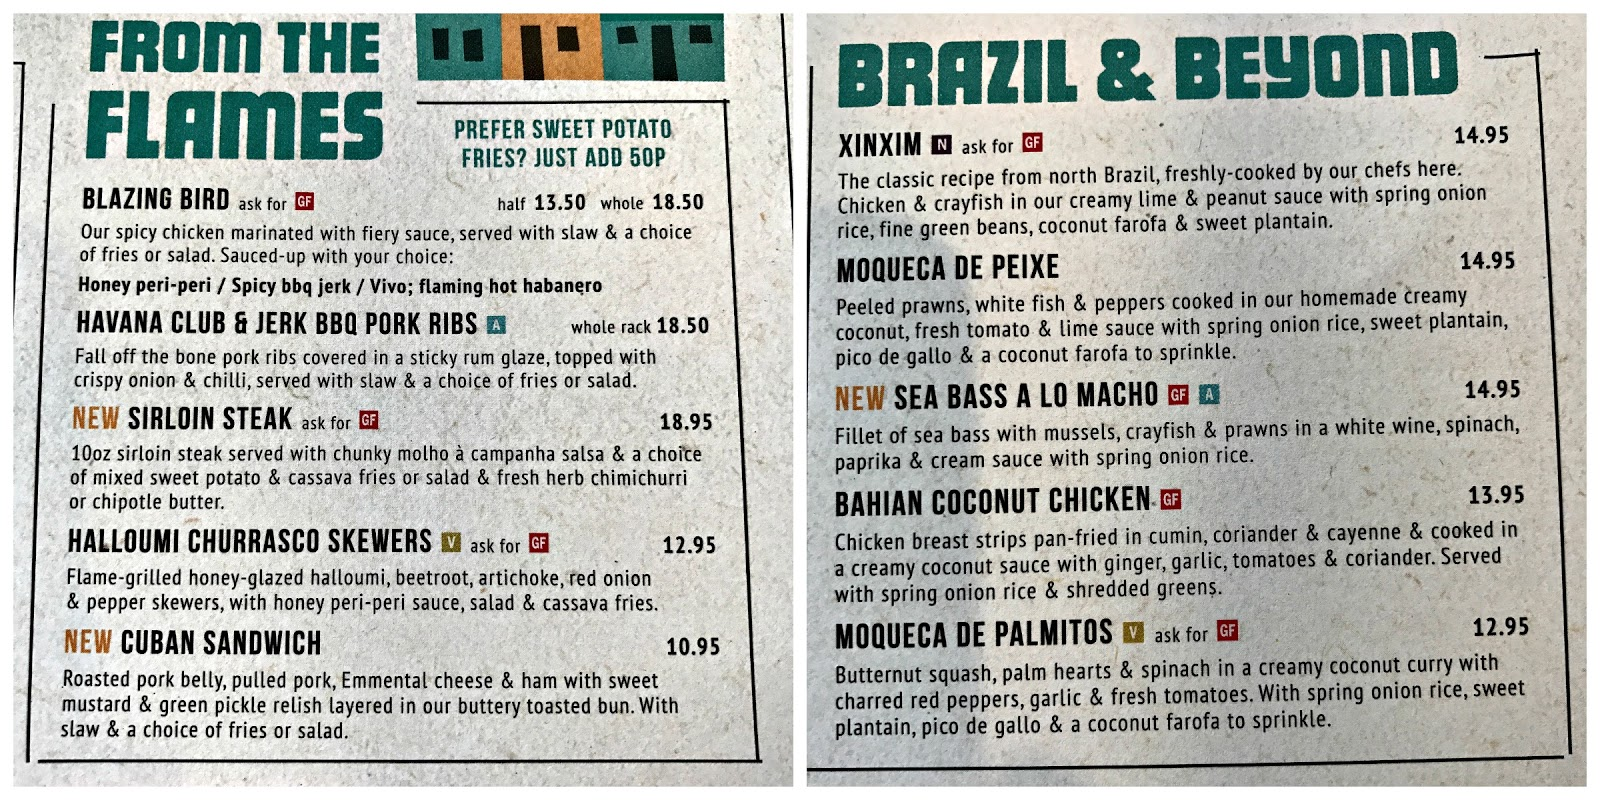 Sample menus from Las Iguanas